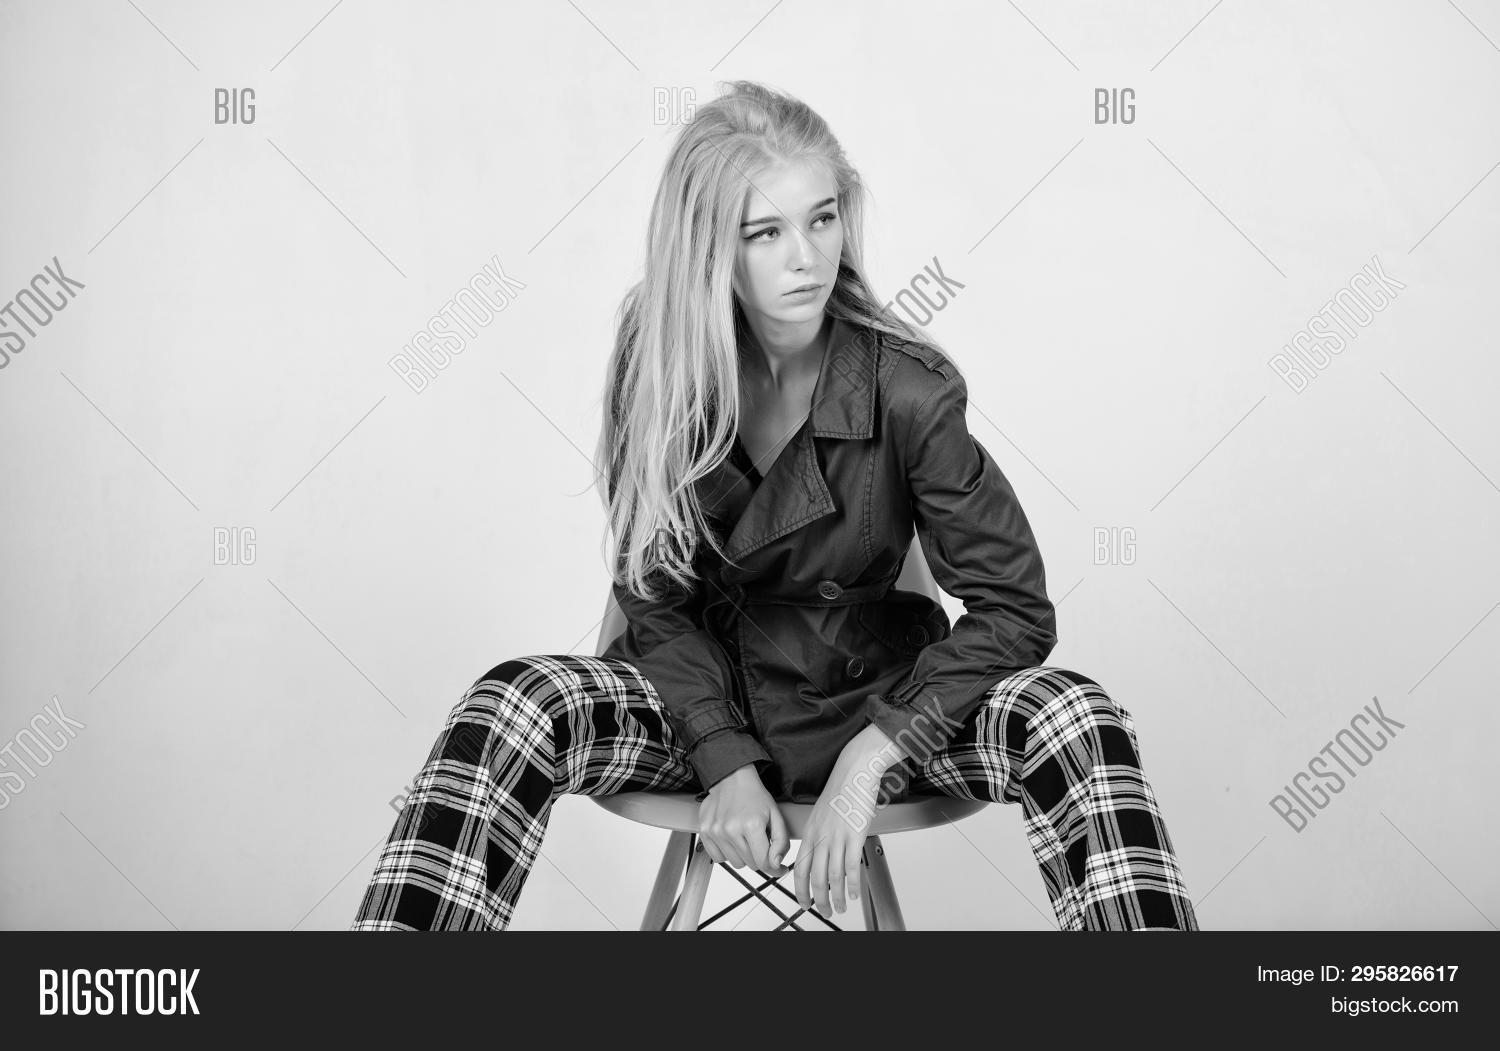 accessory,background,beautiful,beauty,blonde,casual,chair,clothes,coat,concept,face,fashion,fashionable,female,girl,grey,hair,have,jacket,life,lifestyle,makeup,mixing,model,modern,must,person,posing,professional,season,shopping,sit,spring,street,style,stylish,trench,trenchcoat,trend,trendy,wear,woman,young